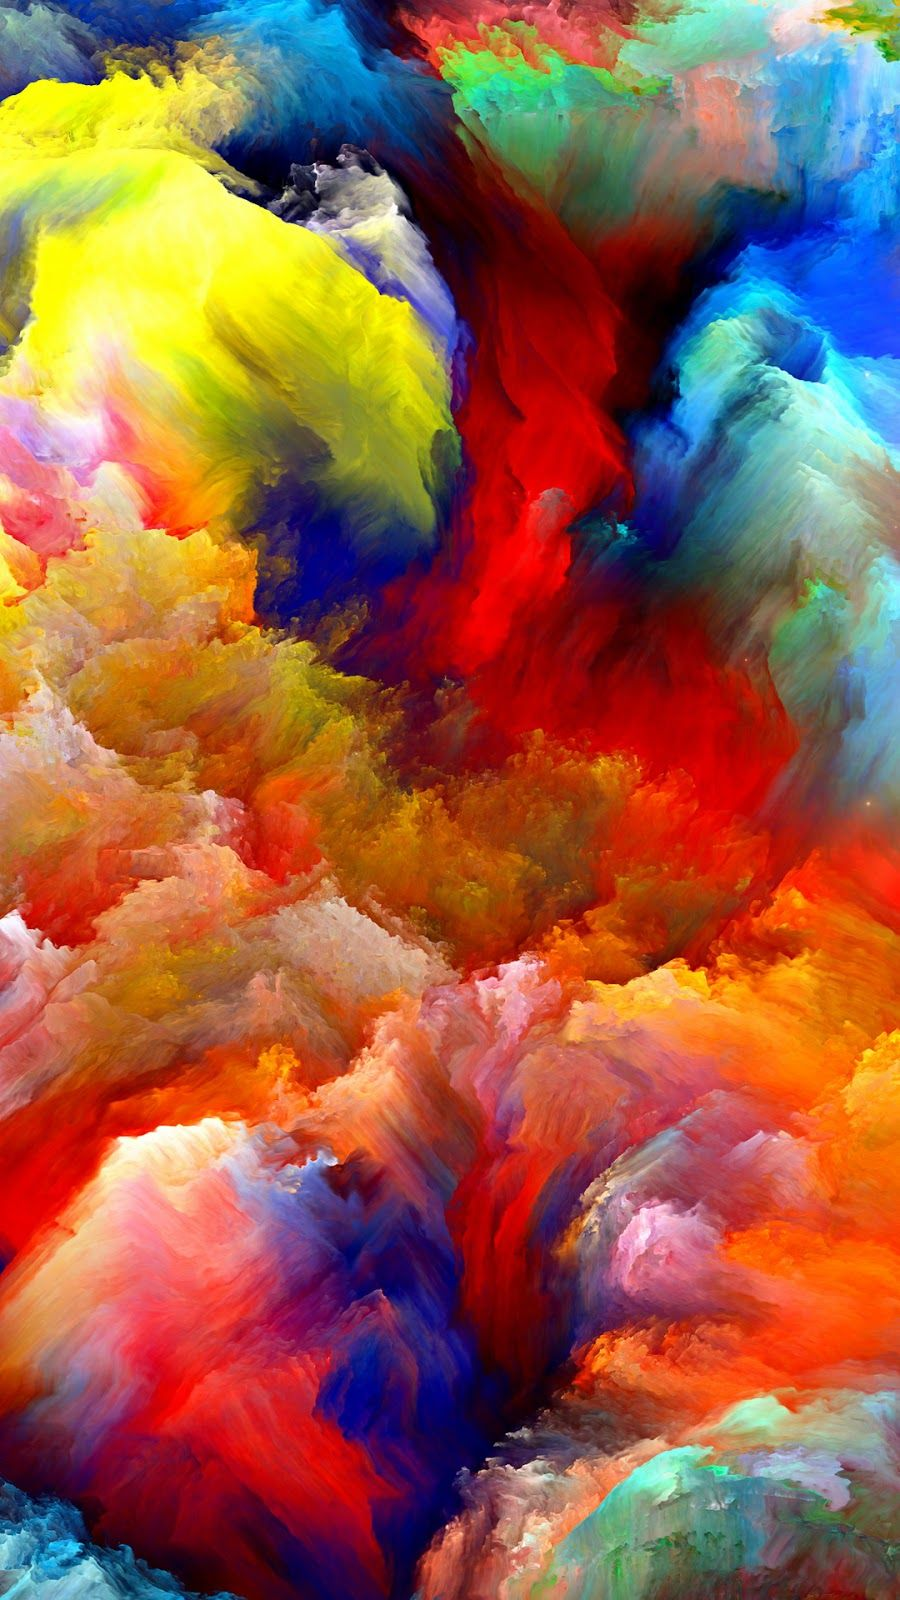 Beautiful Wallpapers For Iphone 6 Plus Pin By Abhikumar On Wallpapers In 2019 Art Colorful